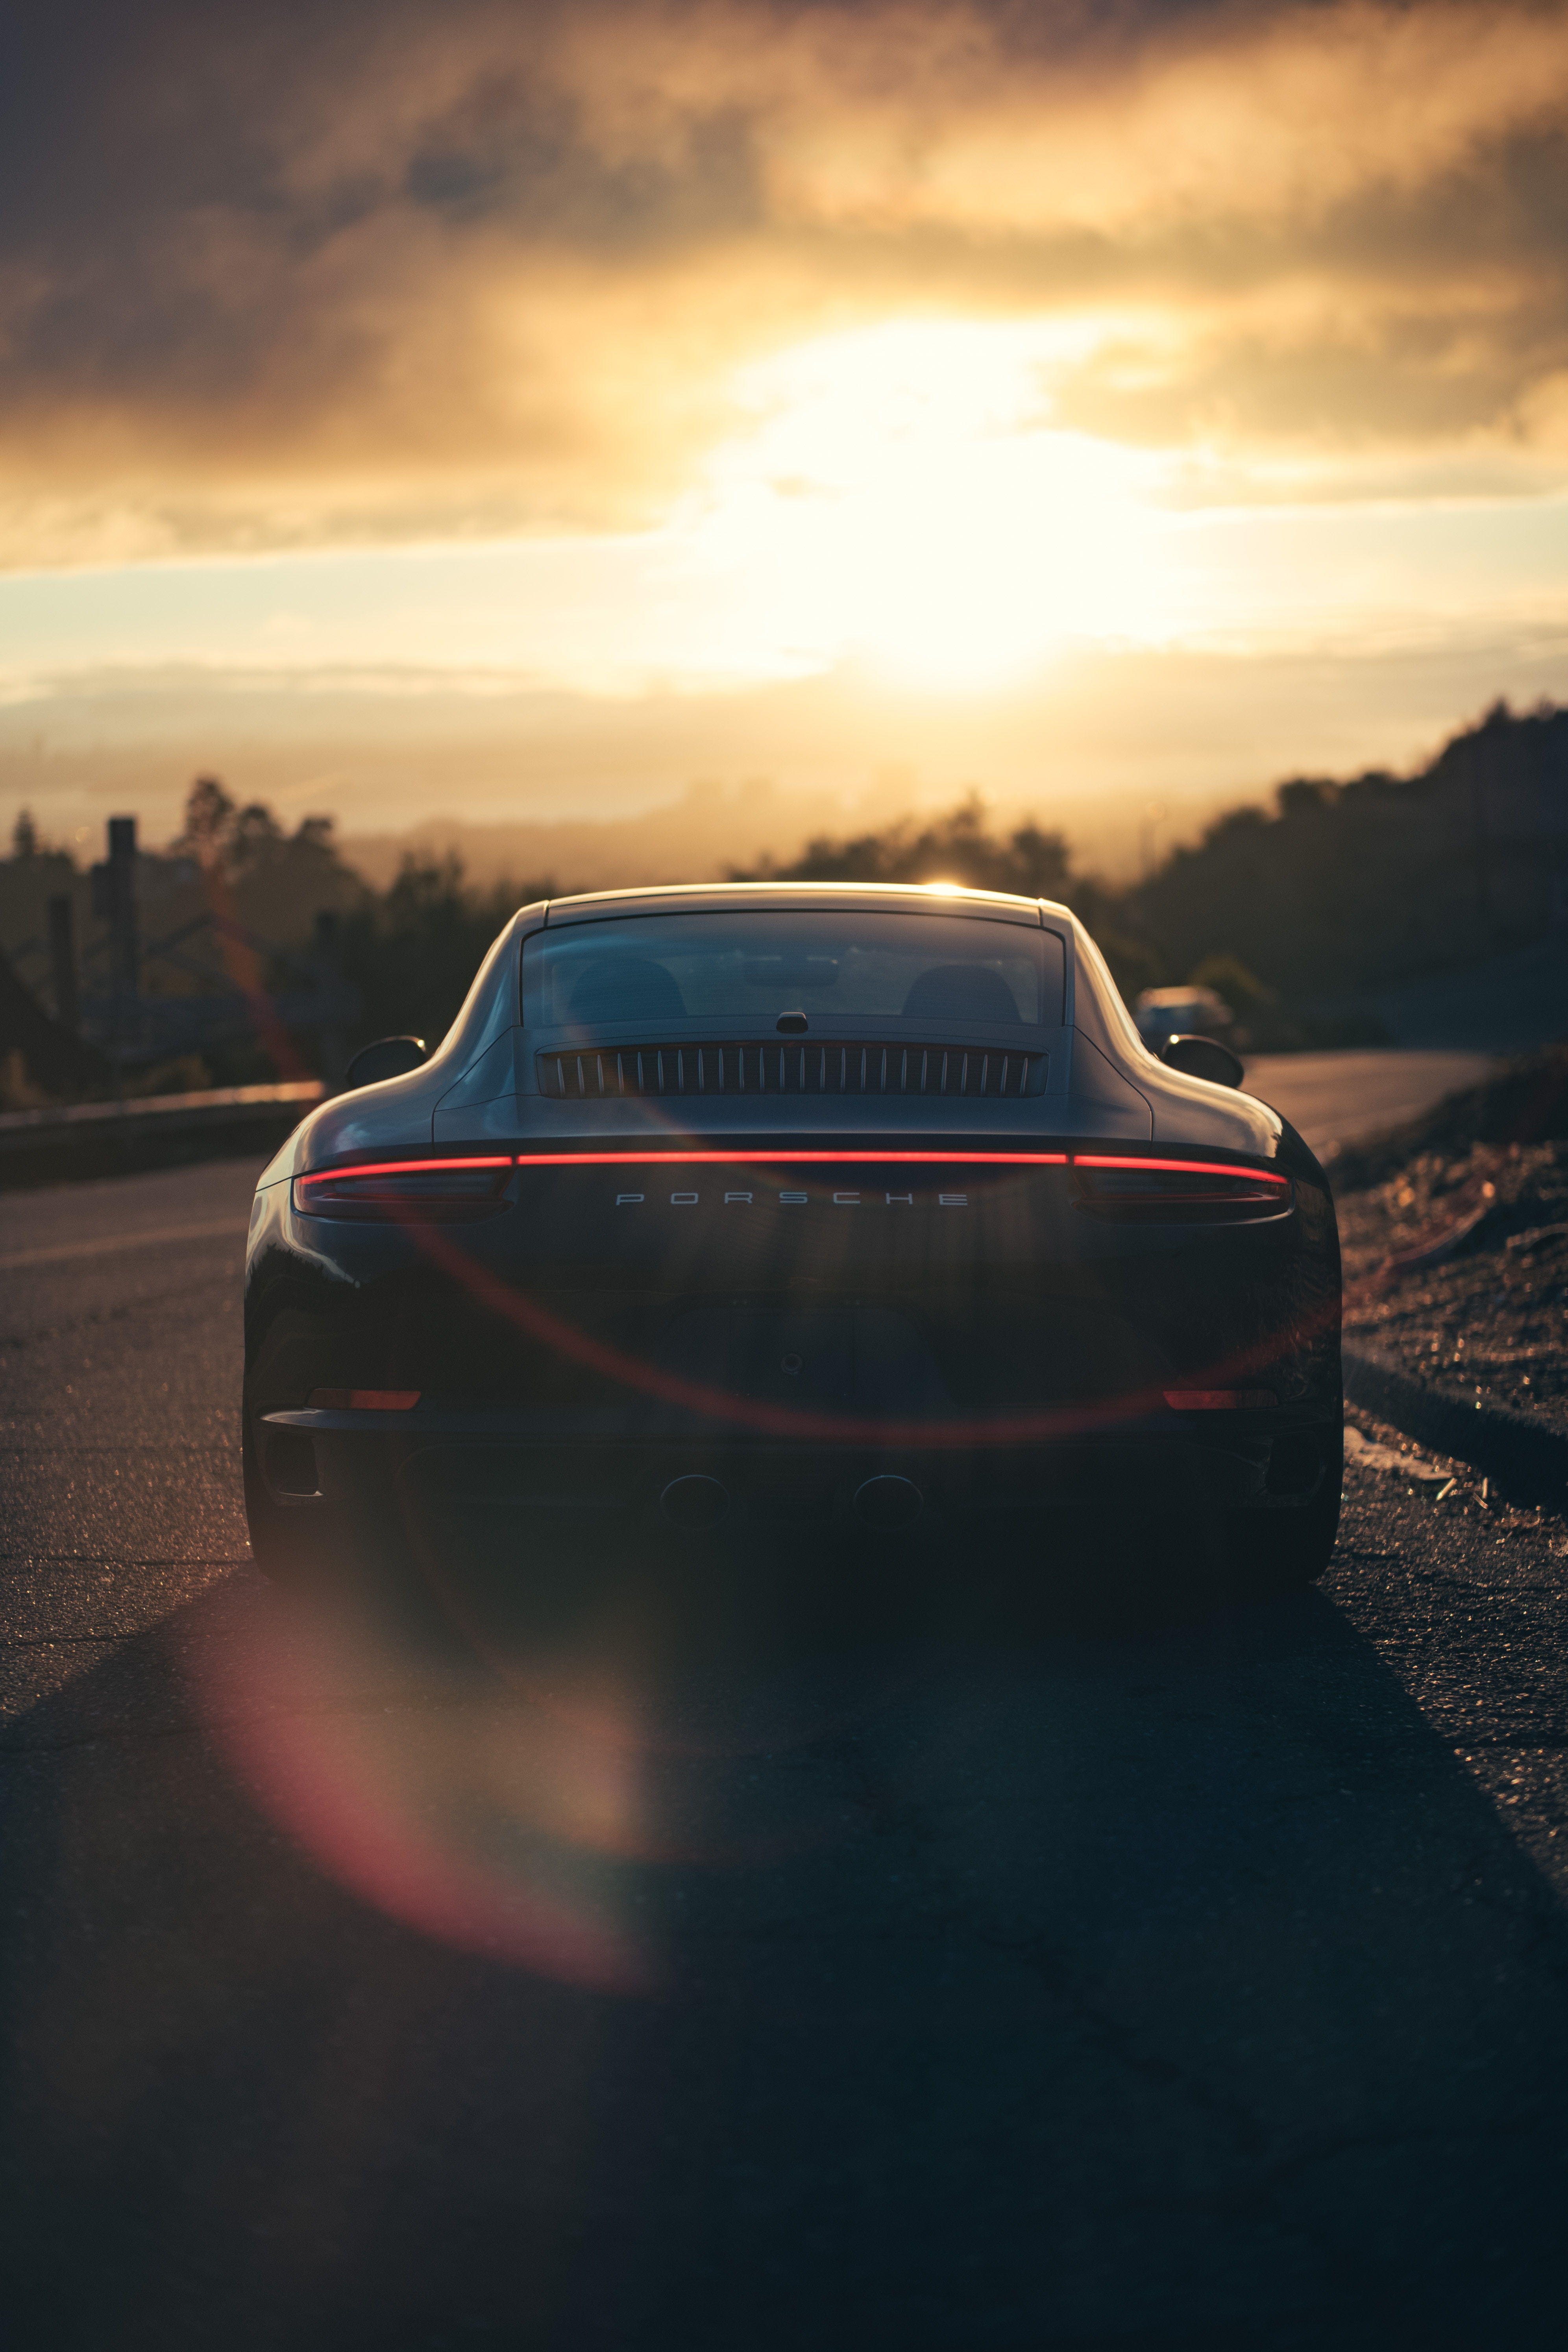 72861 download wallpaper Porsche, Sports, Cars, Traffic, Movement, Sports Car, Back View, Rear View, Sunlight screensavers and pictures for free